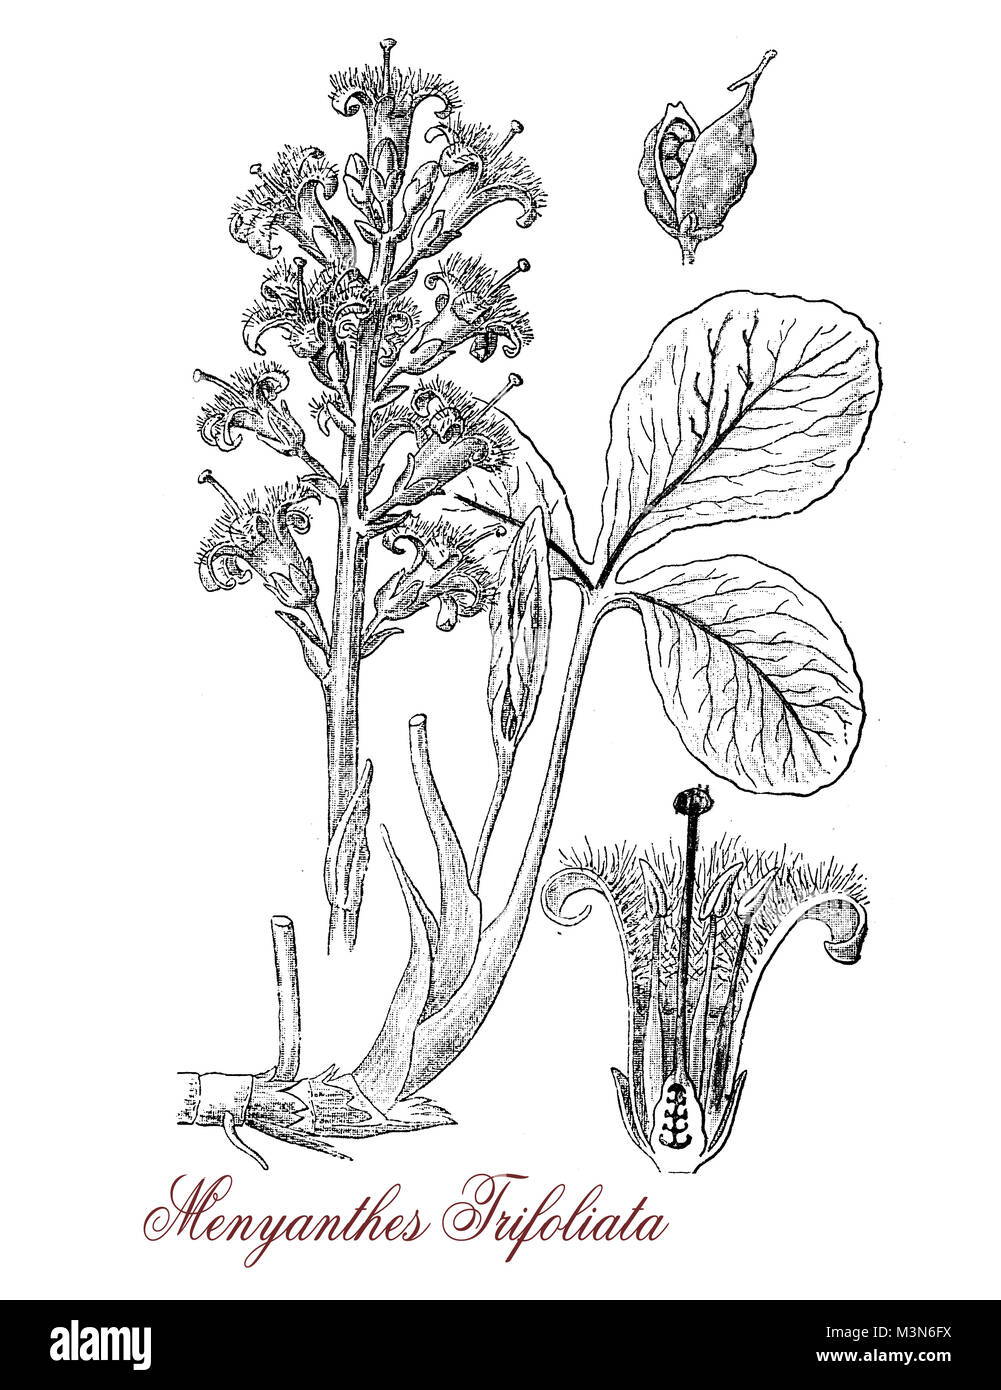 vintage engraving of menyanthes trifoliata, flowering plant used in herbal and alternative medicine, with white - Stock Image